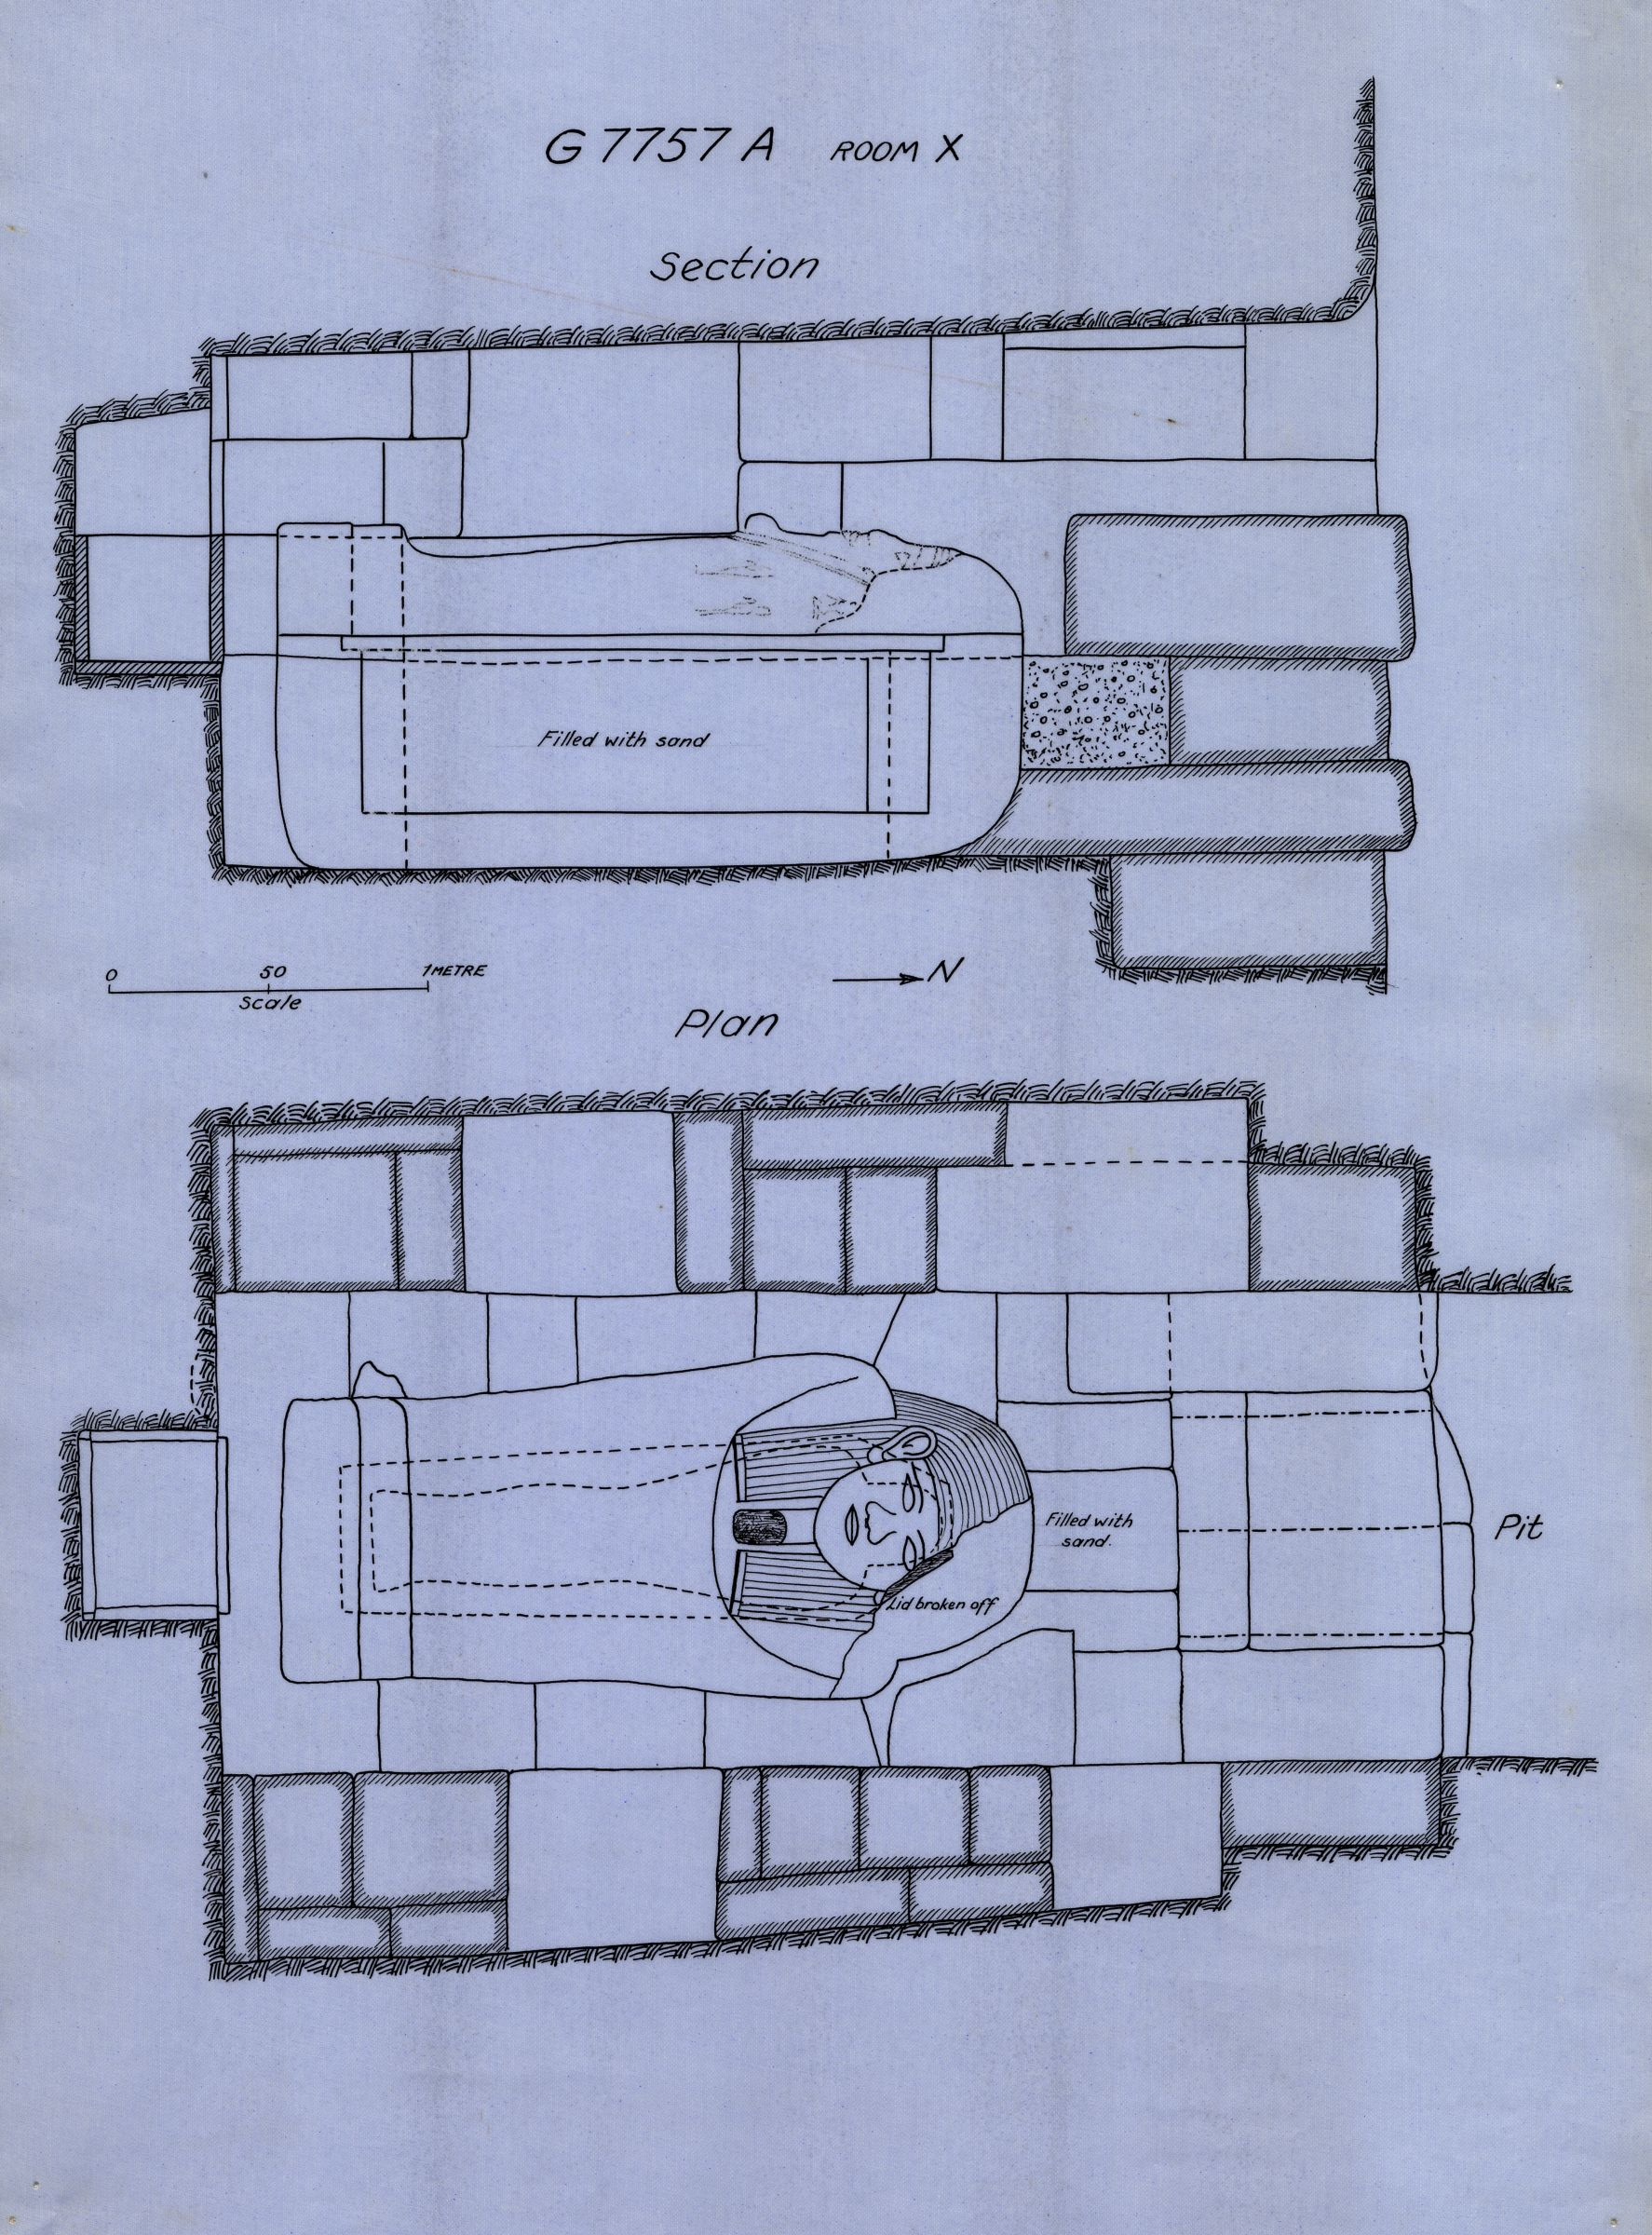 Maps and plans: G 7757, Shaft A, room X